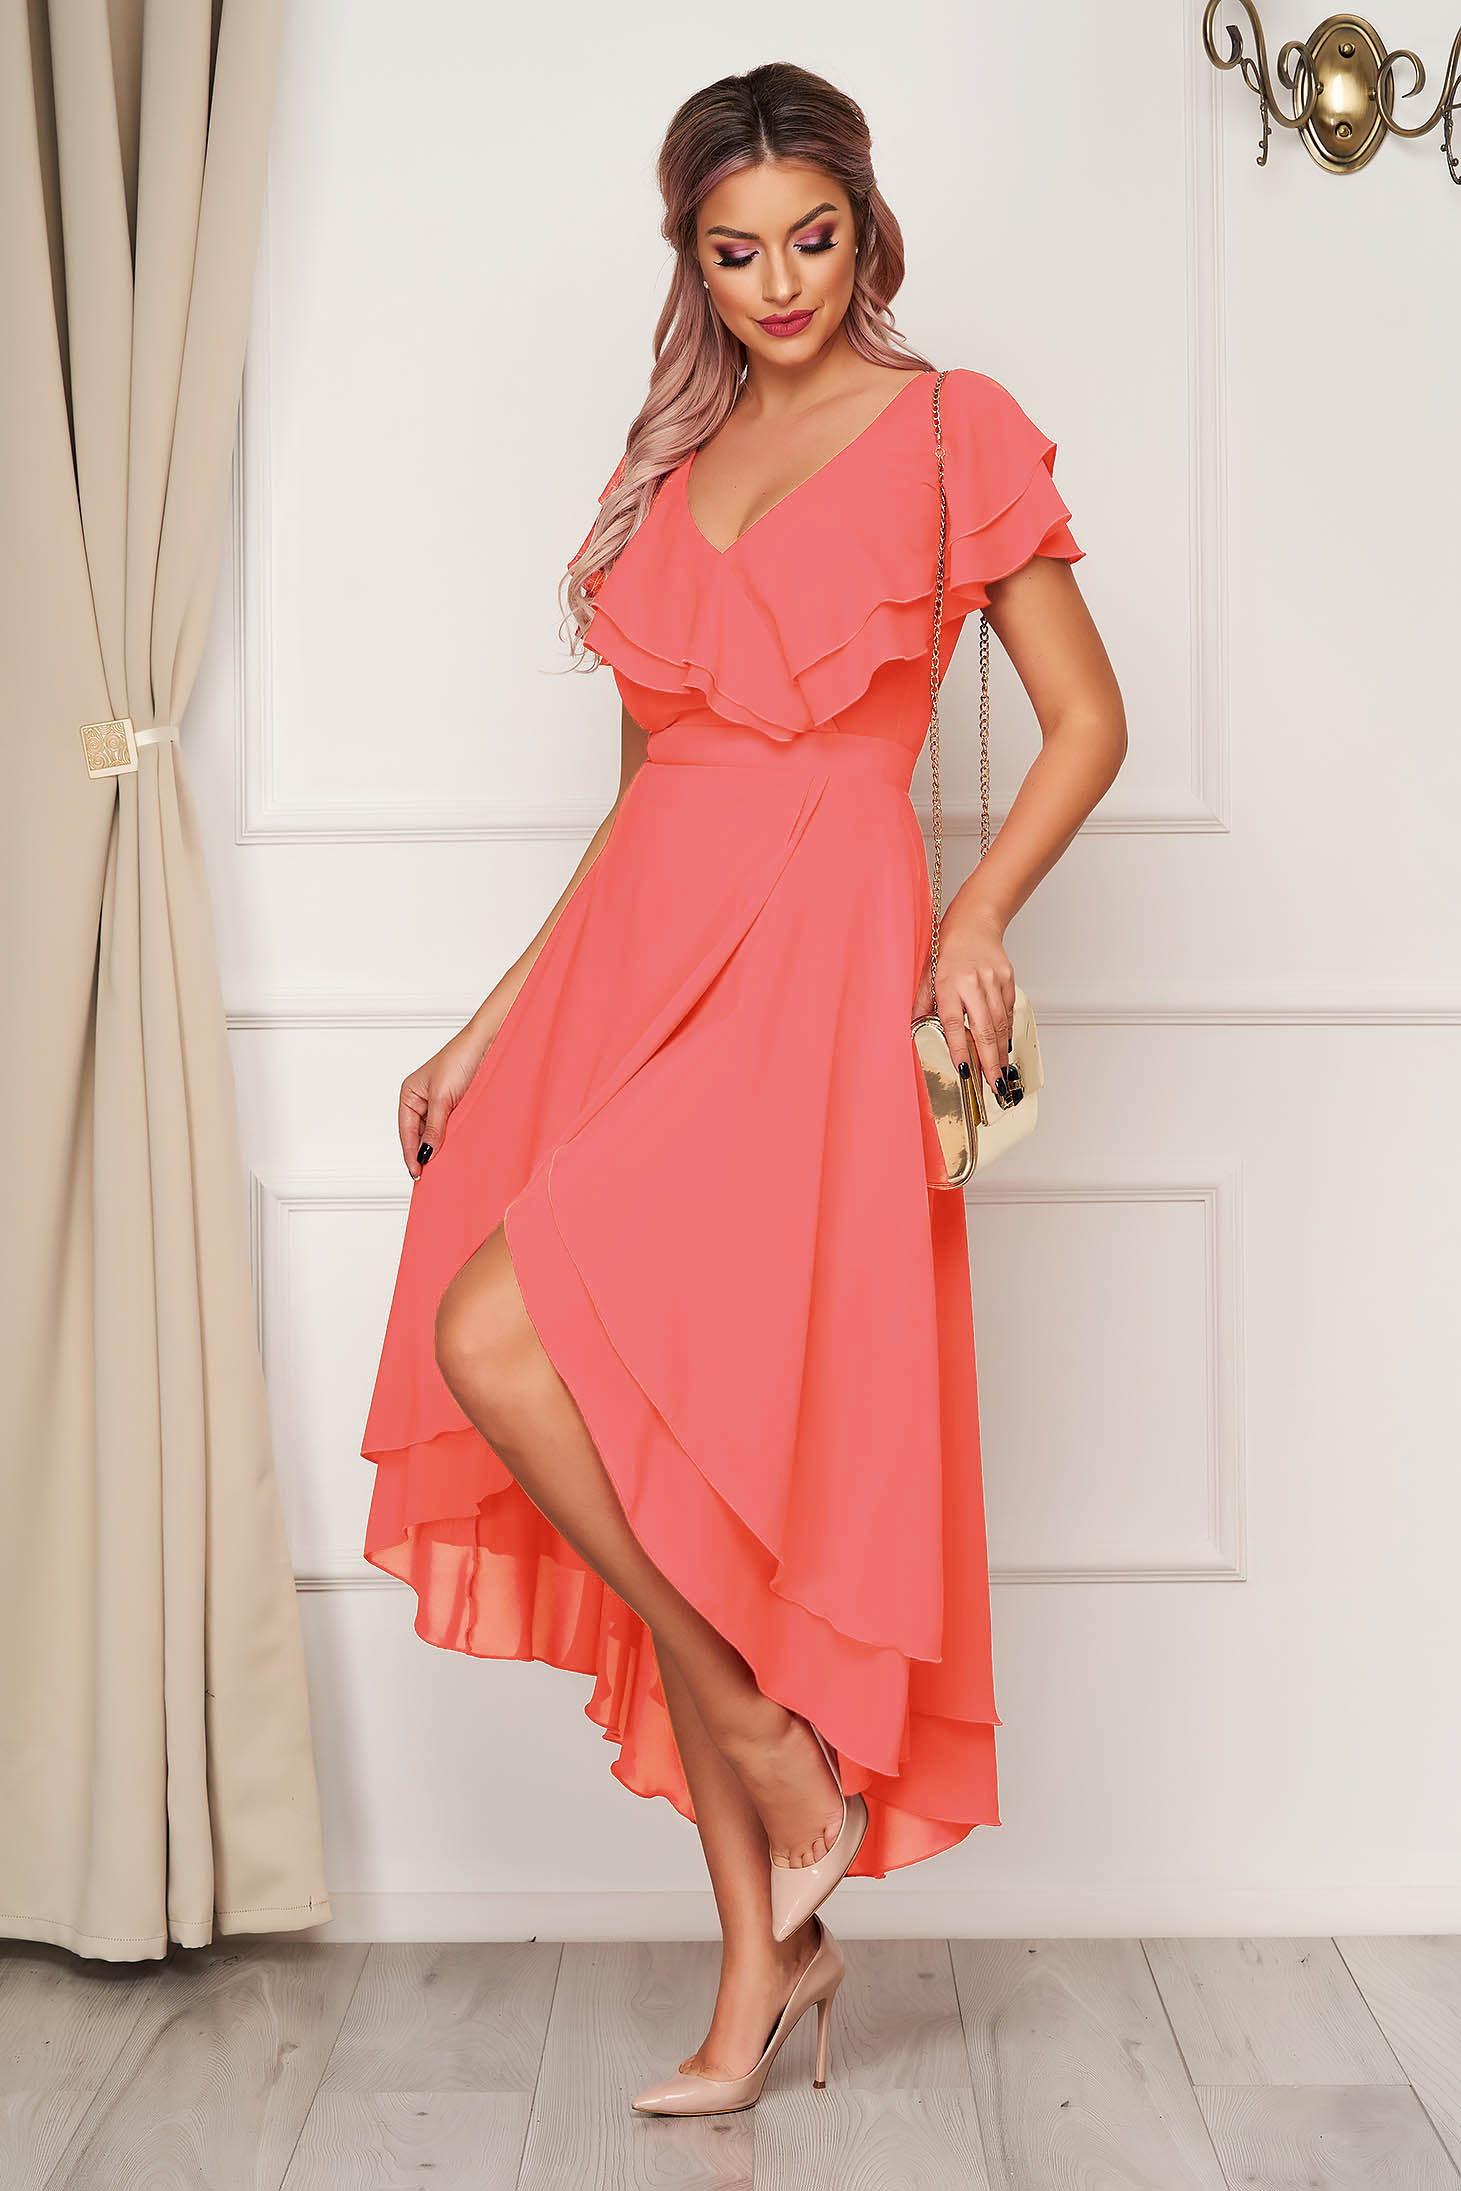 Dress StarShinerS coral occasional from veil fabric with ruffle details asymmetrical cloche